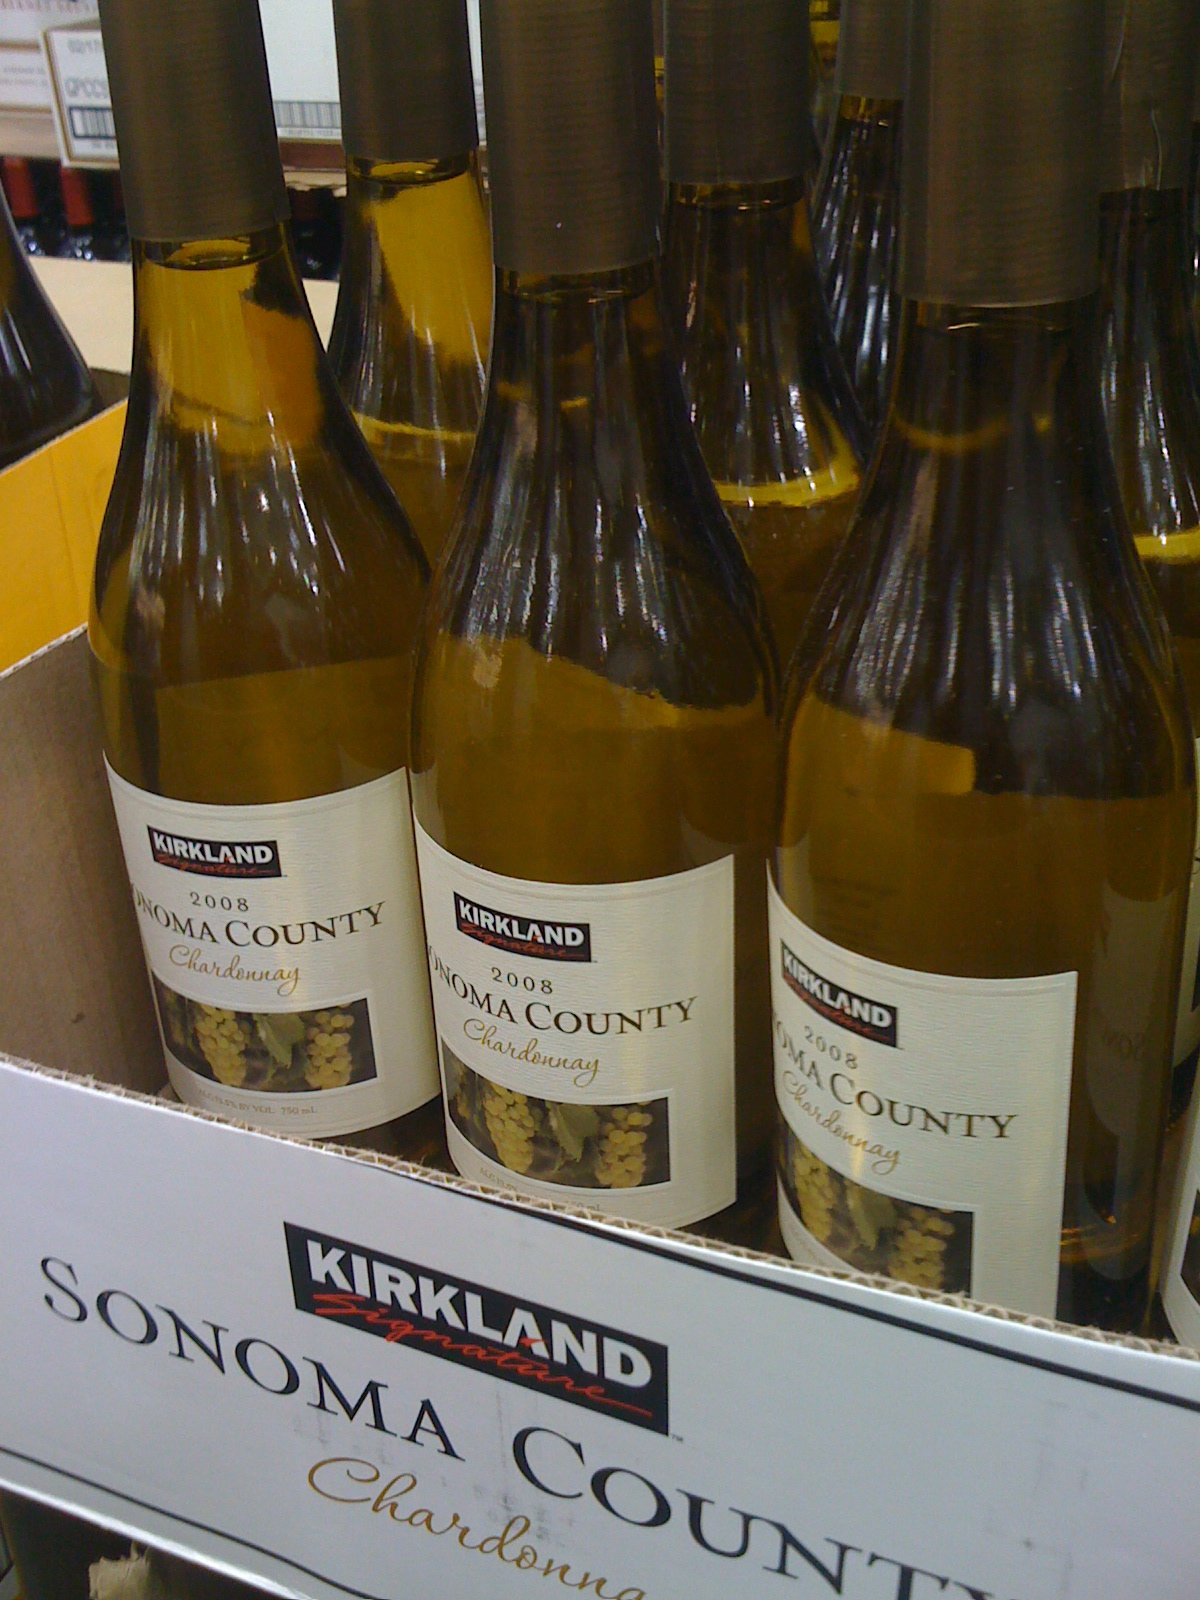 Costcos Kirkland Signature Label First Appeared In 2003